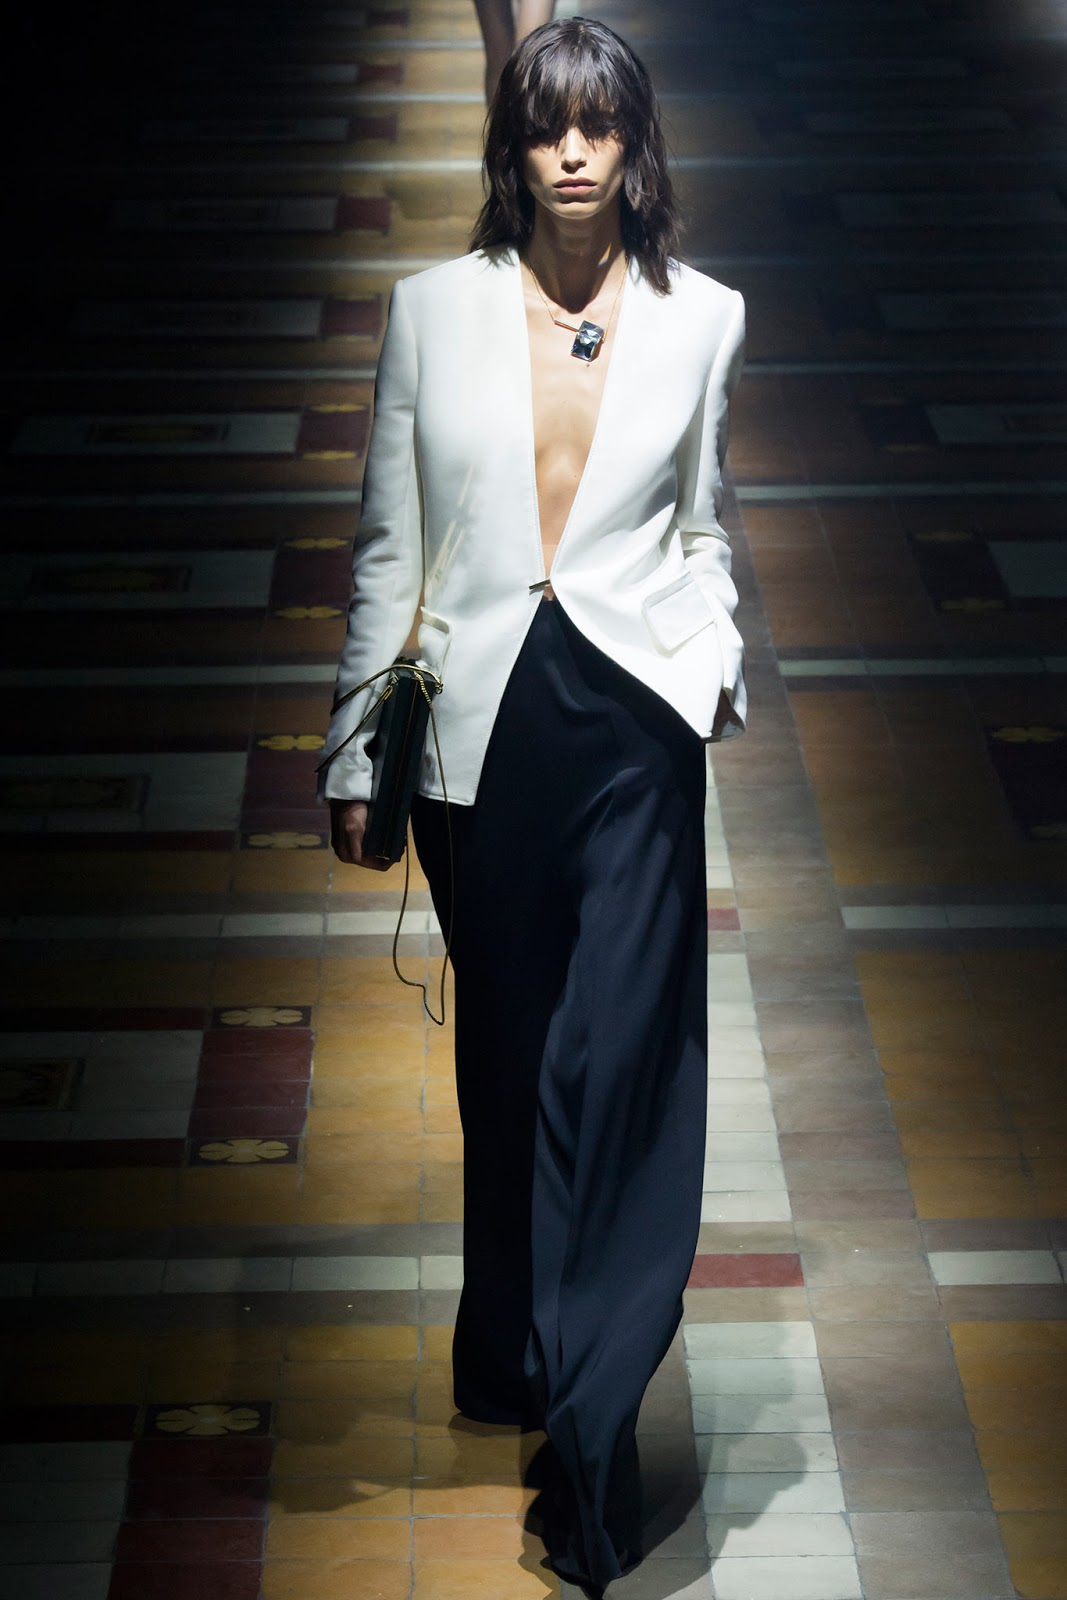 Lanvin / Spring/Summer 2015 trends / trouser suit / styling tips and outfit inspiration / via fashioned by love british fashion blog